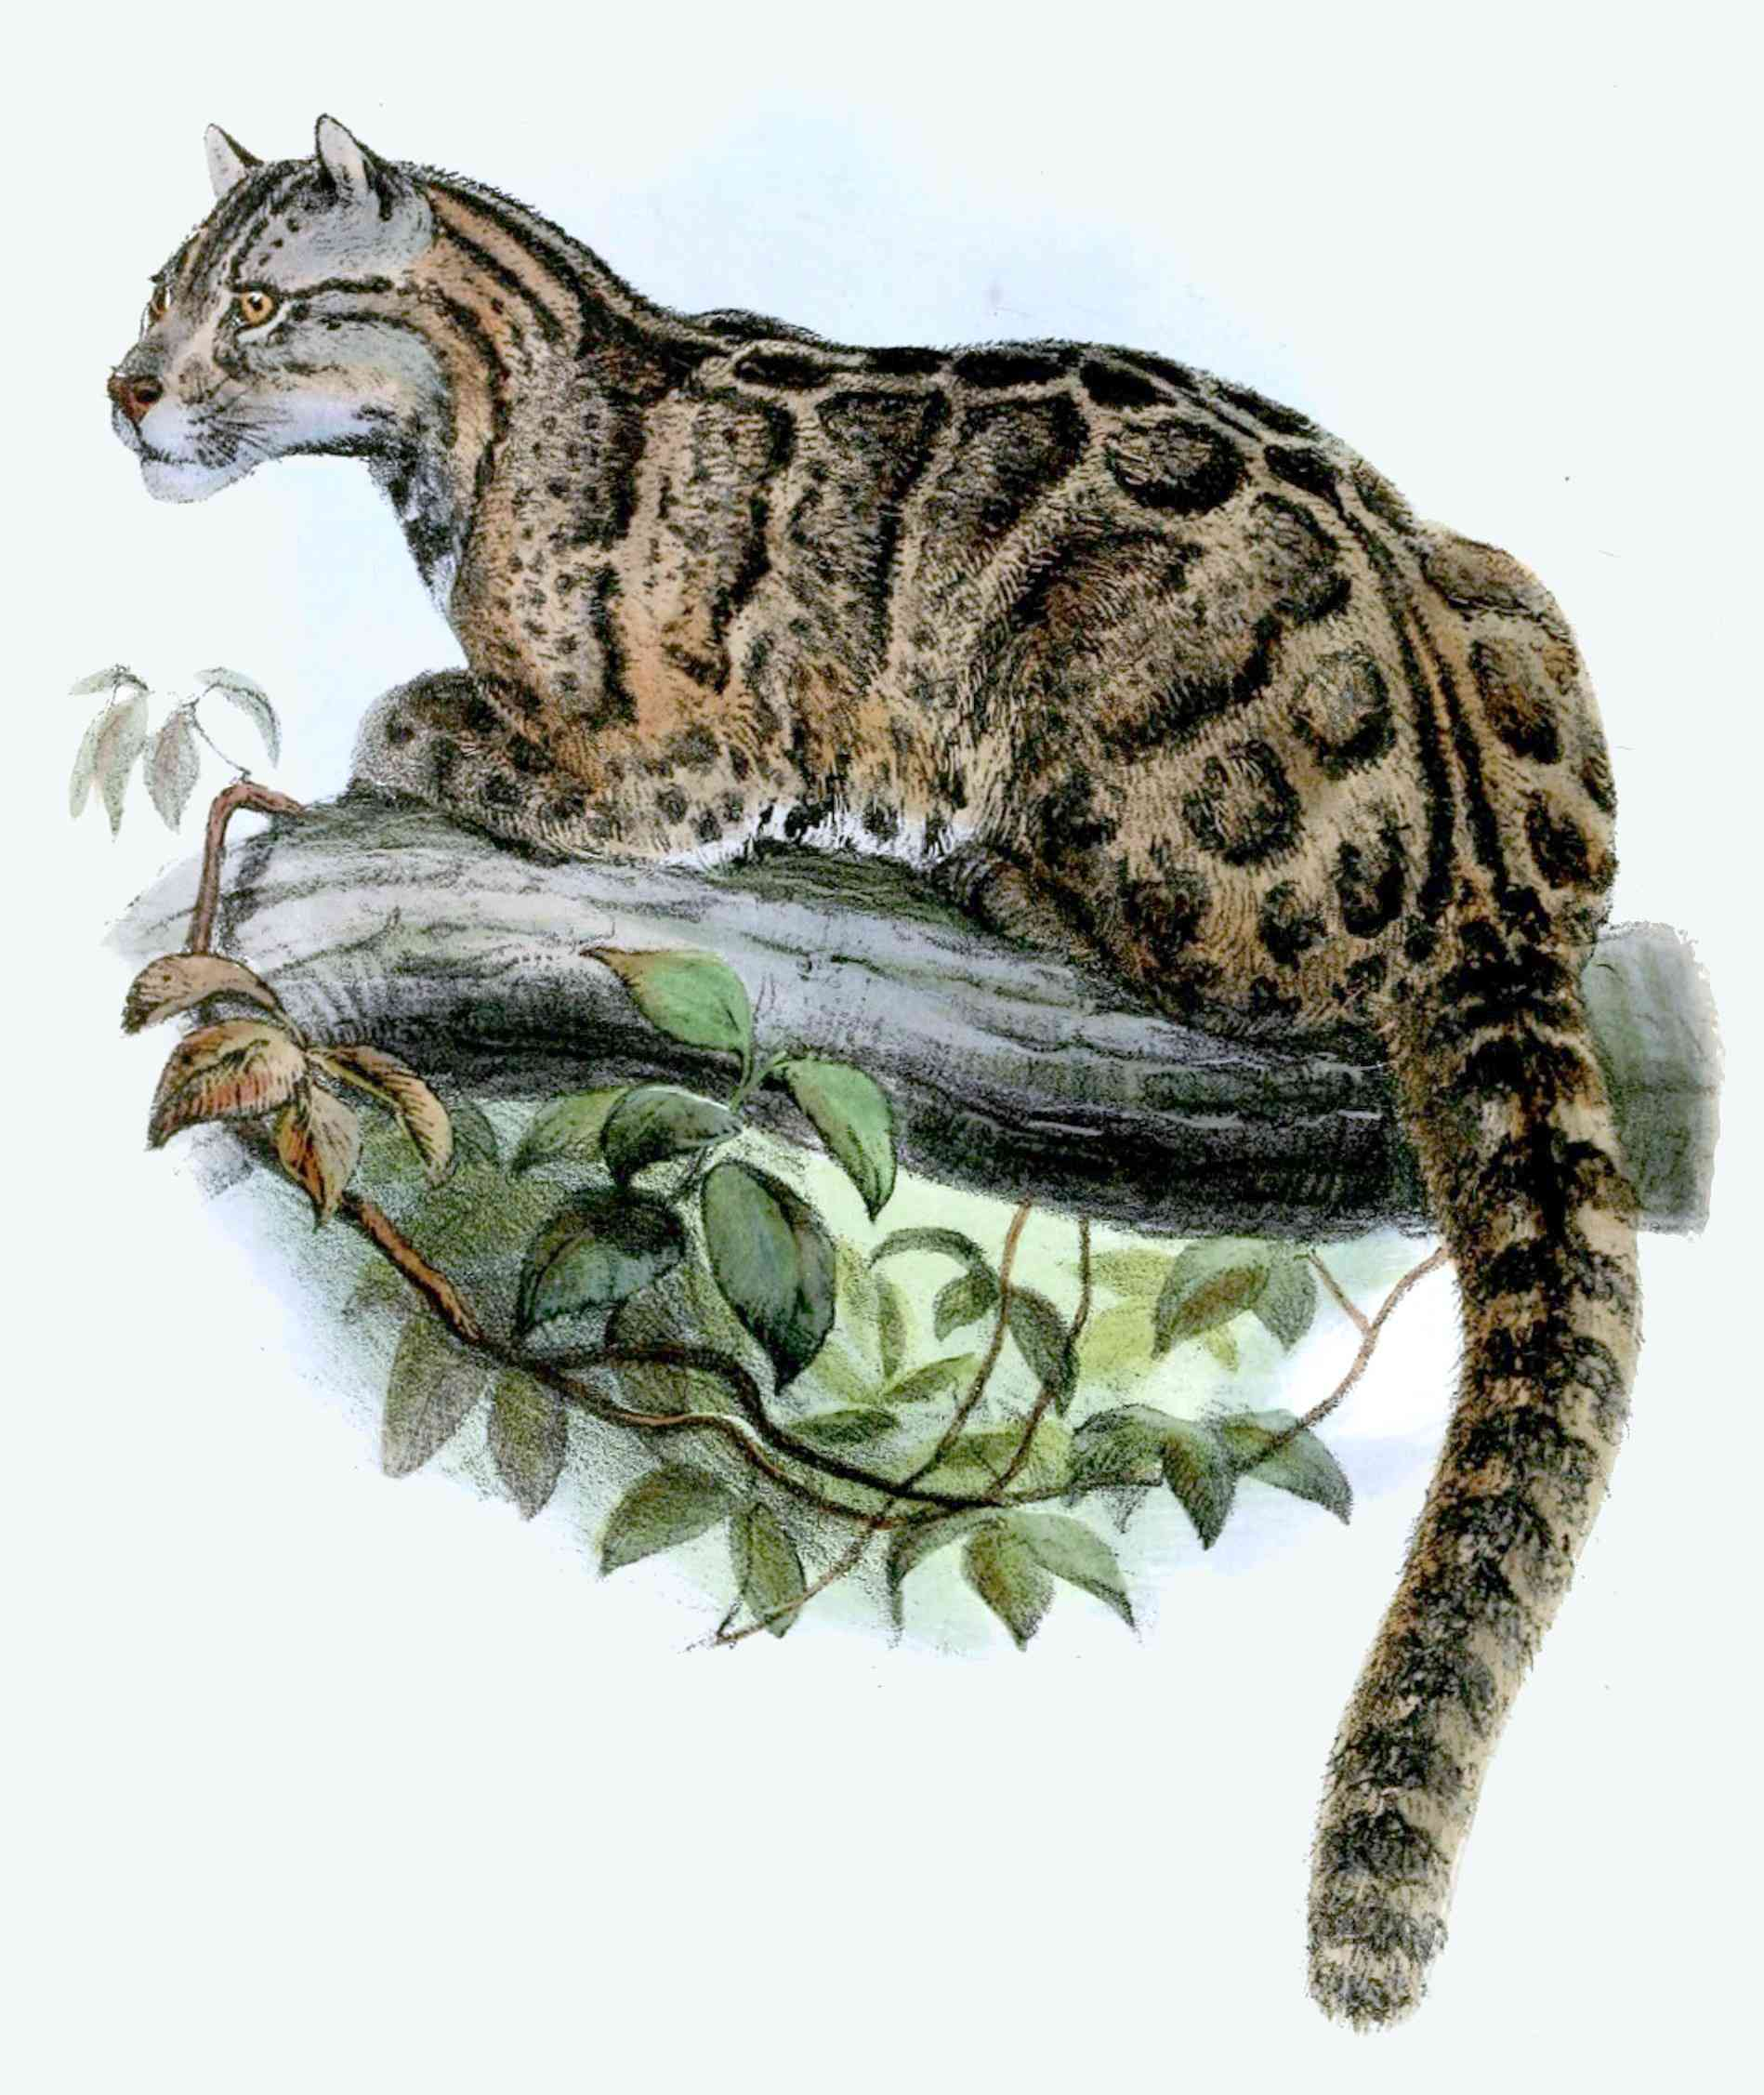 The Formosan clouded leopard is endemic to Taiwan and considered extinct but eyewitness accounts keep speculation alive. Photo credit: Wikipedia